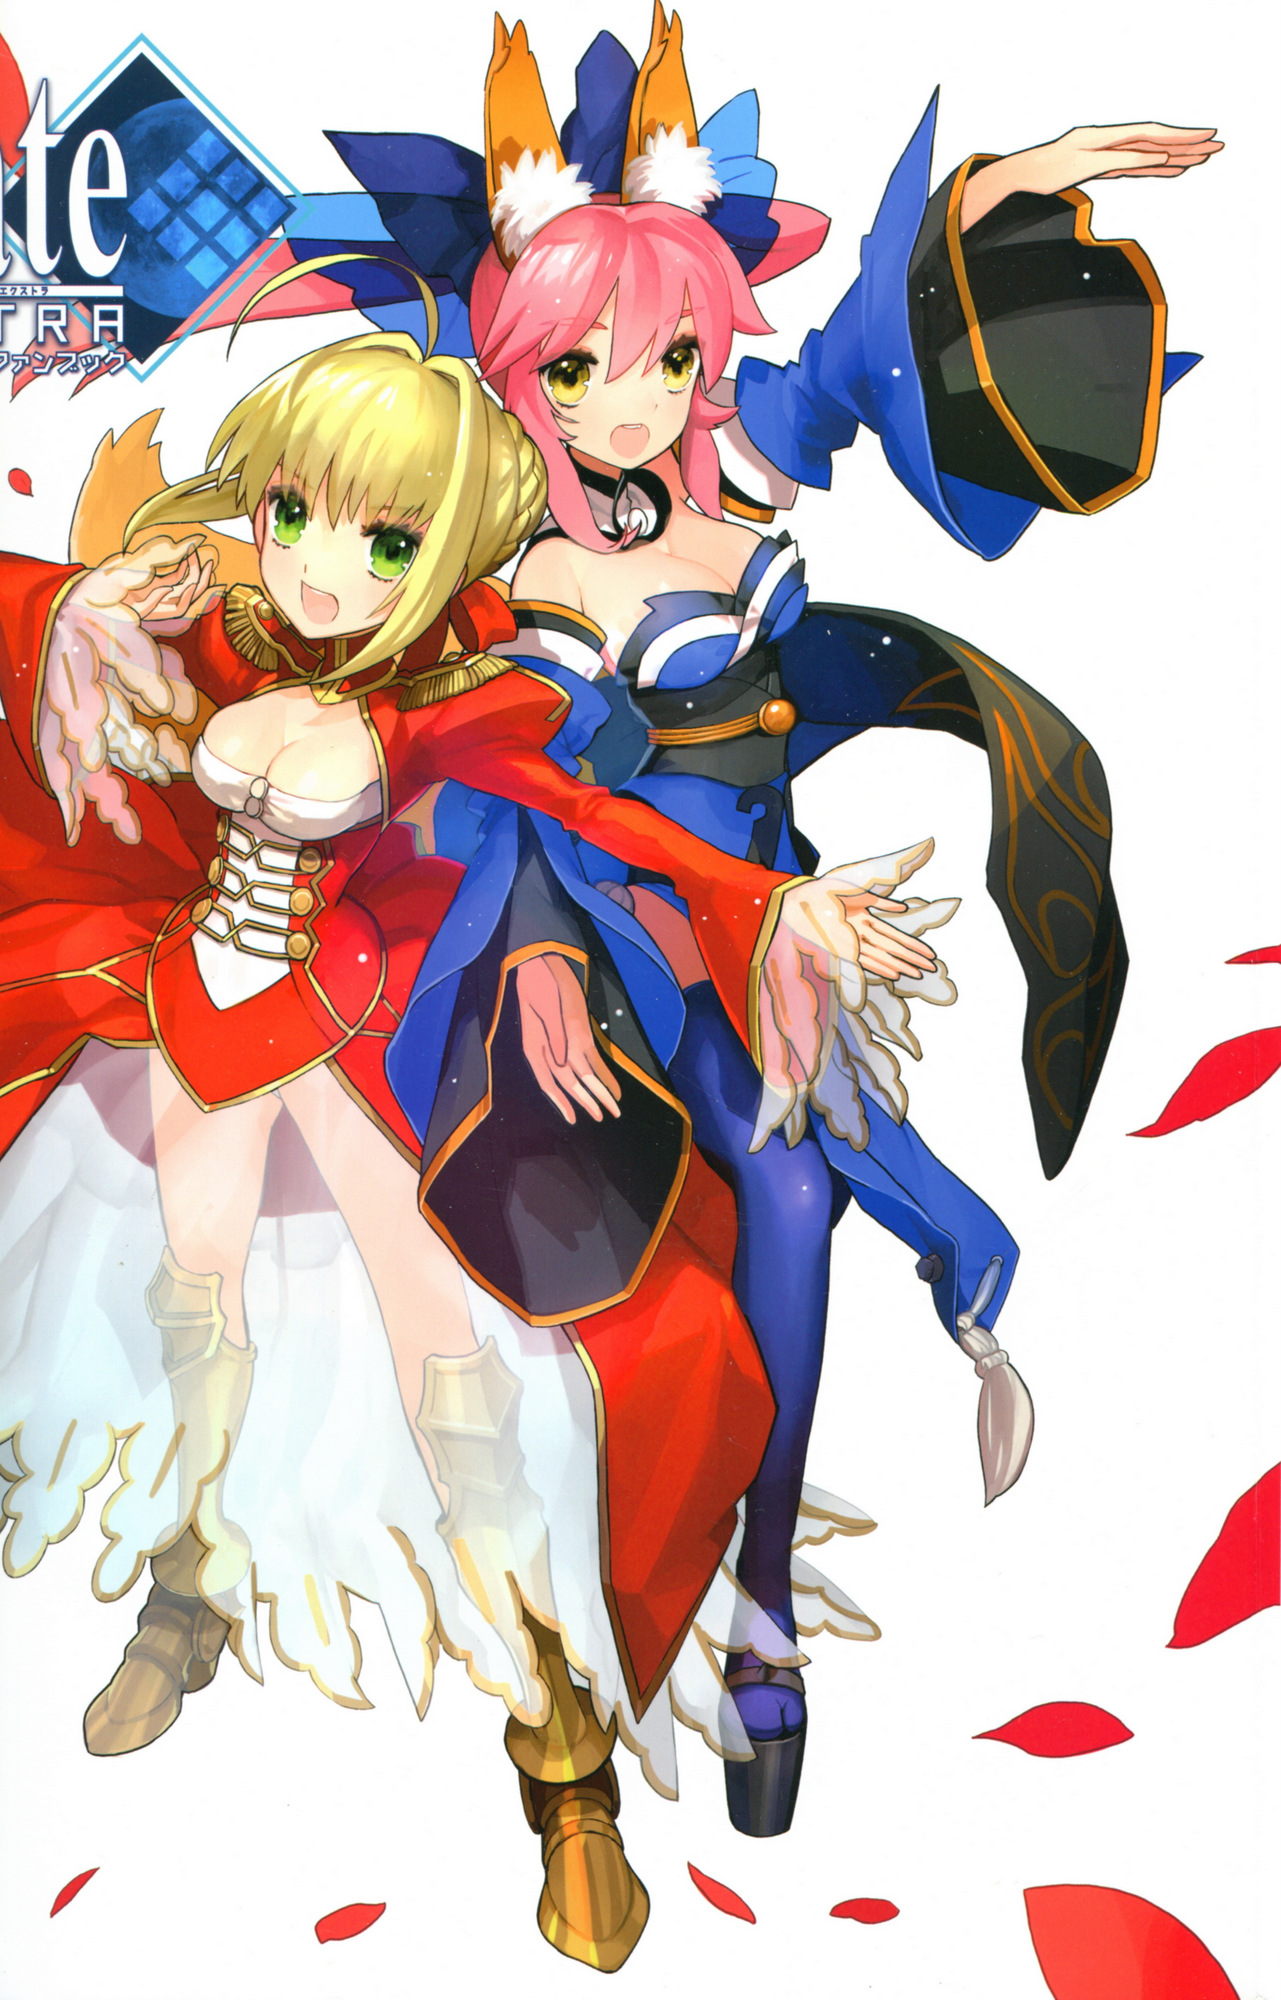 Fate/Extra Visual Fanbook